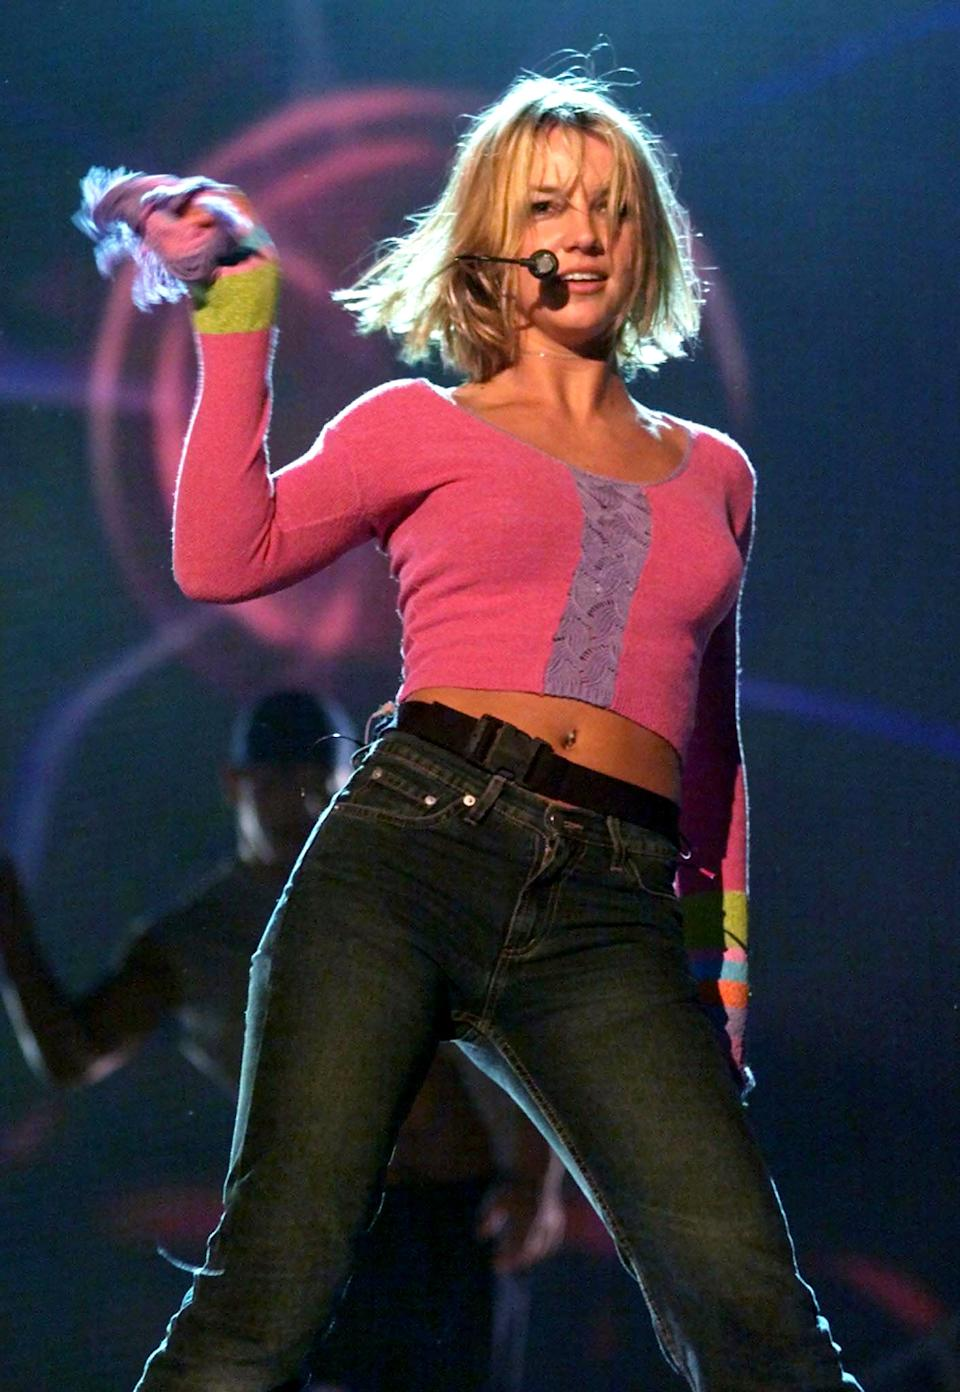 """Singer Britney Spears rehearses her song """"Baby Hit Me One More Time"""" during a rehearsal at the Staples Center, February 20 in Los Angeles. Spears will perform the song at the Grammy Awards which will be telecast from Los Angeles February 23. Spears is also nominated as Best New Artist."""